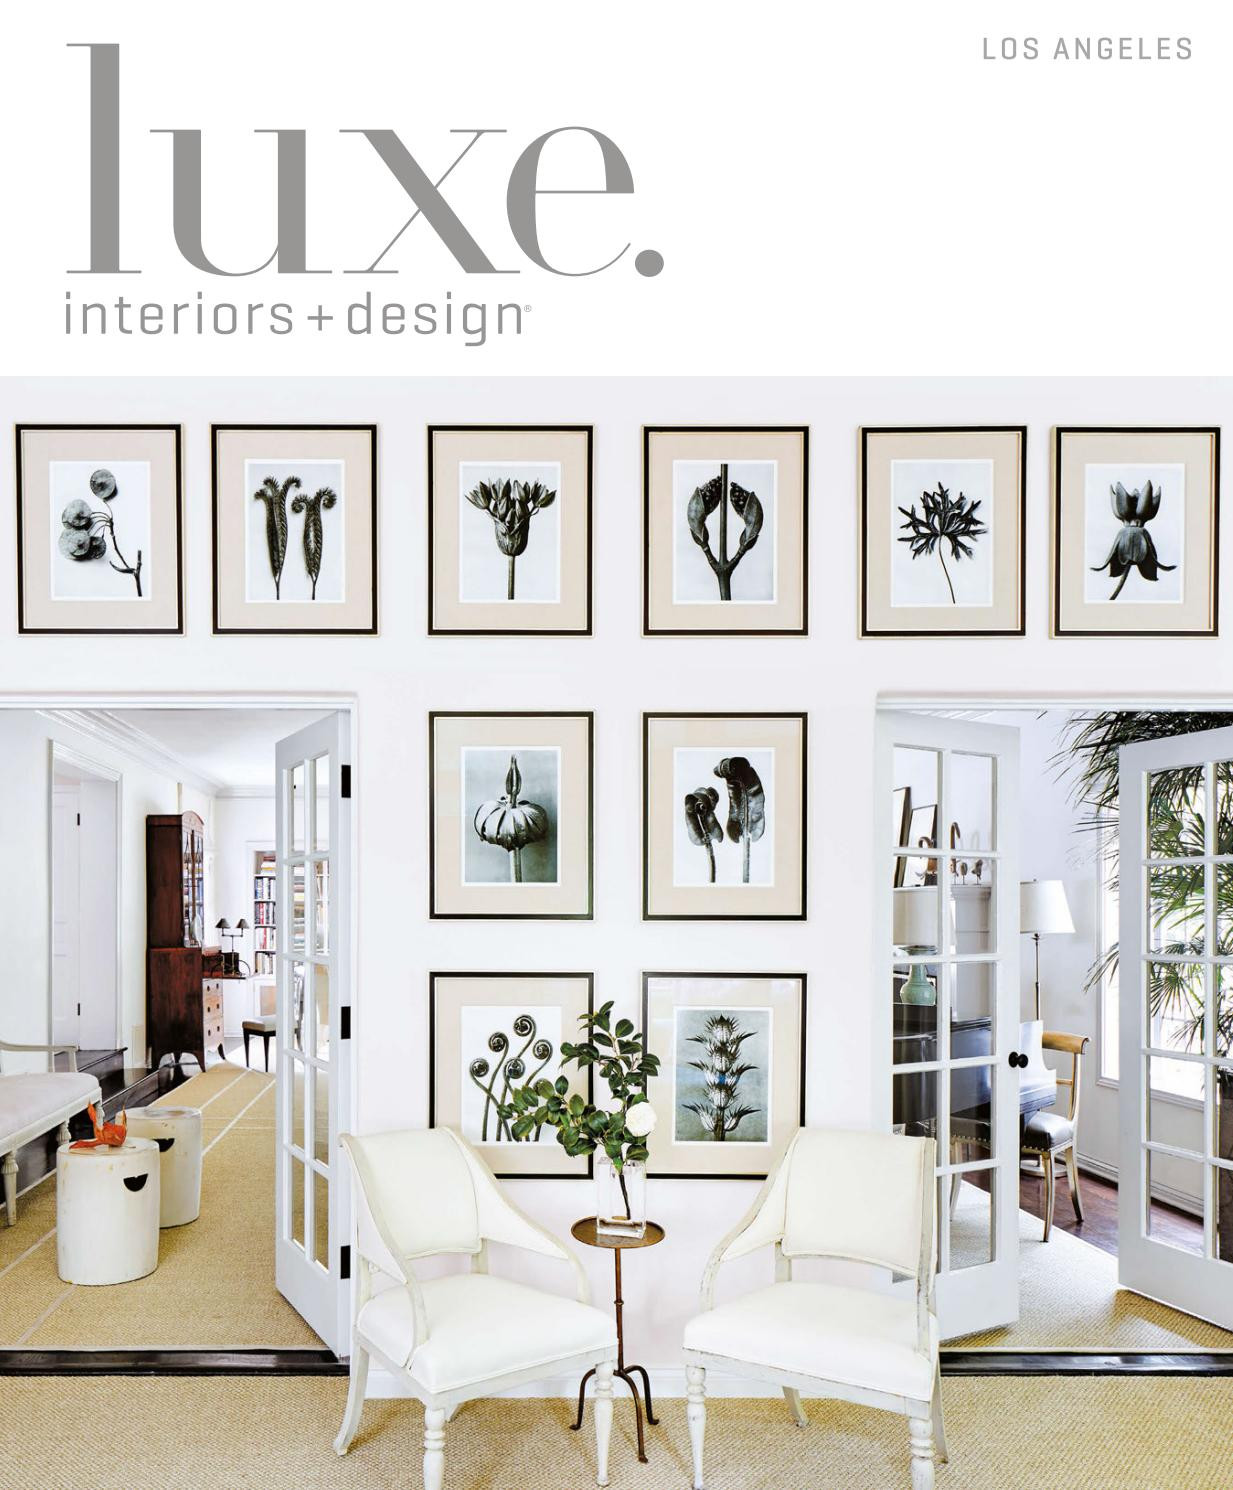 hardwood floor specialists costa mesa ca of luxe magazine march 2017 los angeles by sandowa issuu throughout page 1